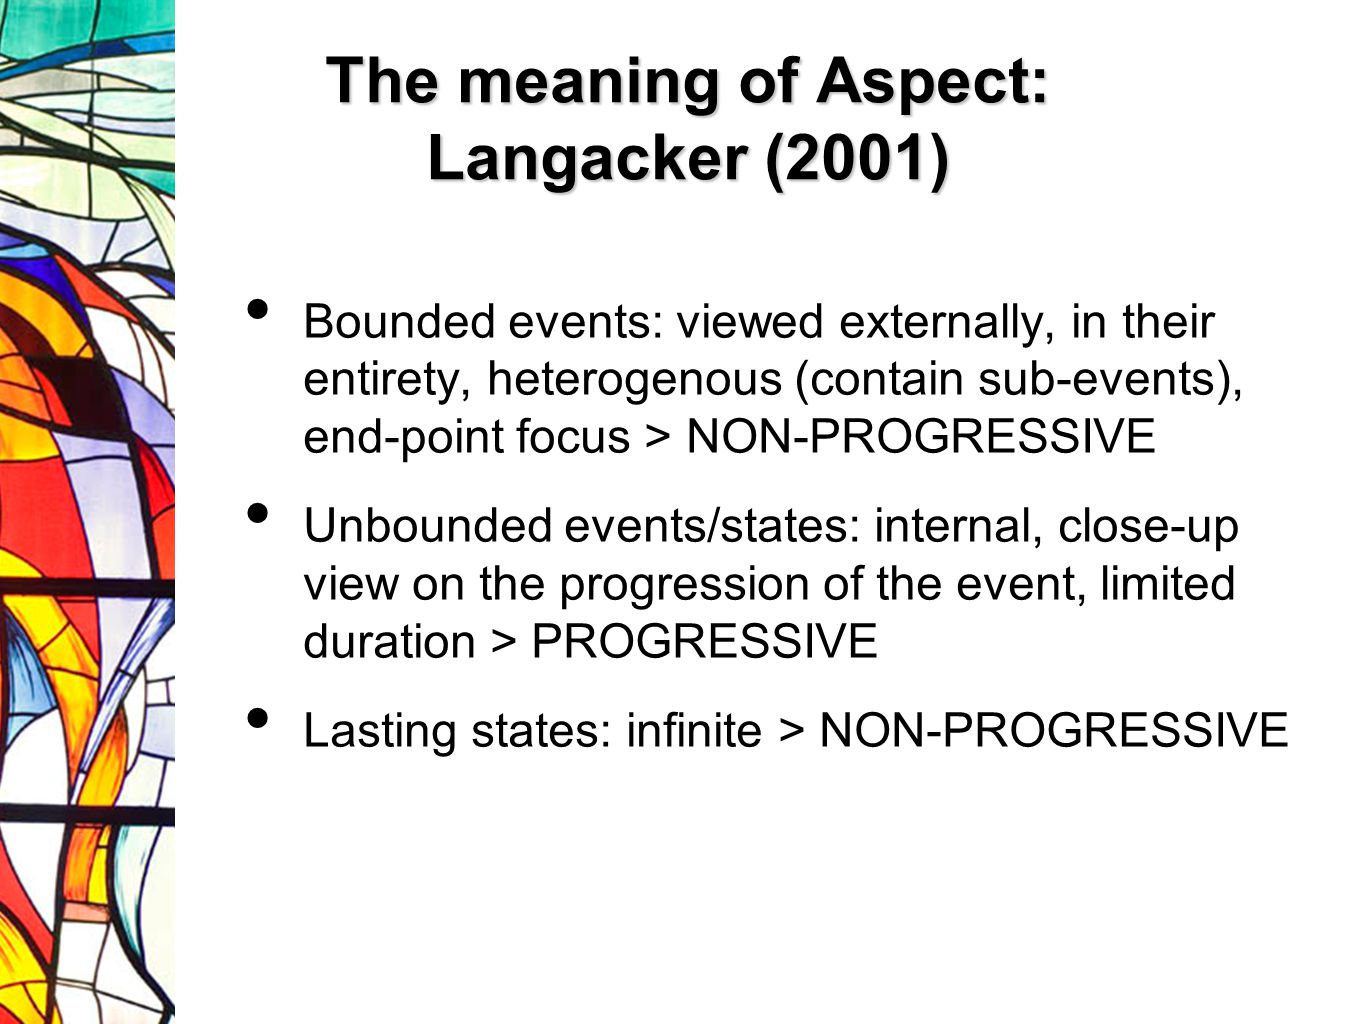 The meaning of Aspect: Langacker (2001) Bounded events: viewed externally, in their entirety, heterogenous (contain sub-events), end-point focus > NON-PROGRESSIVE Unbounded events/states: internal, close-up view on the progression of the event, limited duration > PROGRESSIVE Lasting states: infinite > NON-PROGRESSIVE